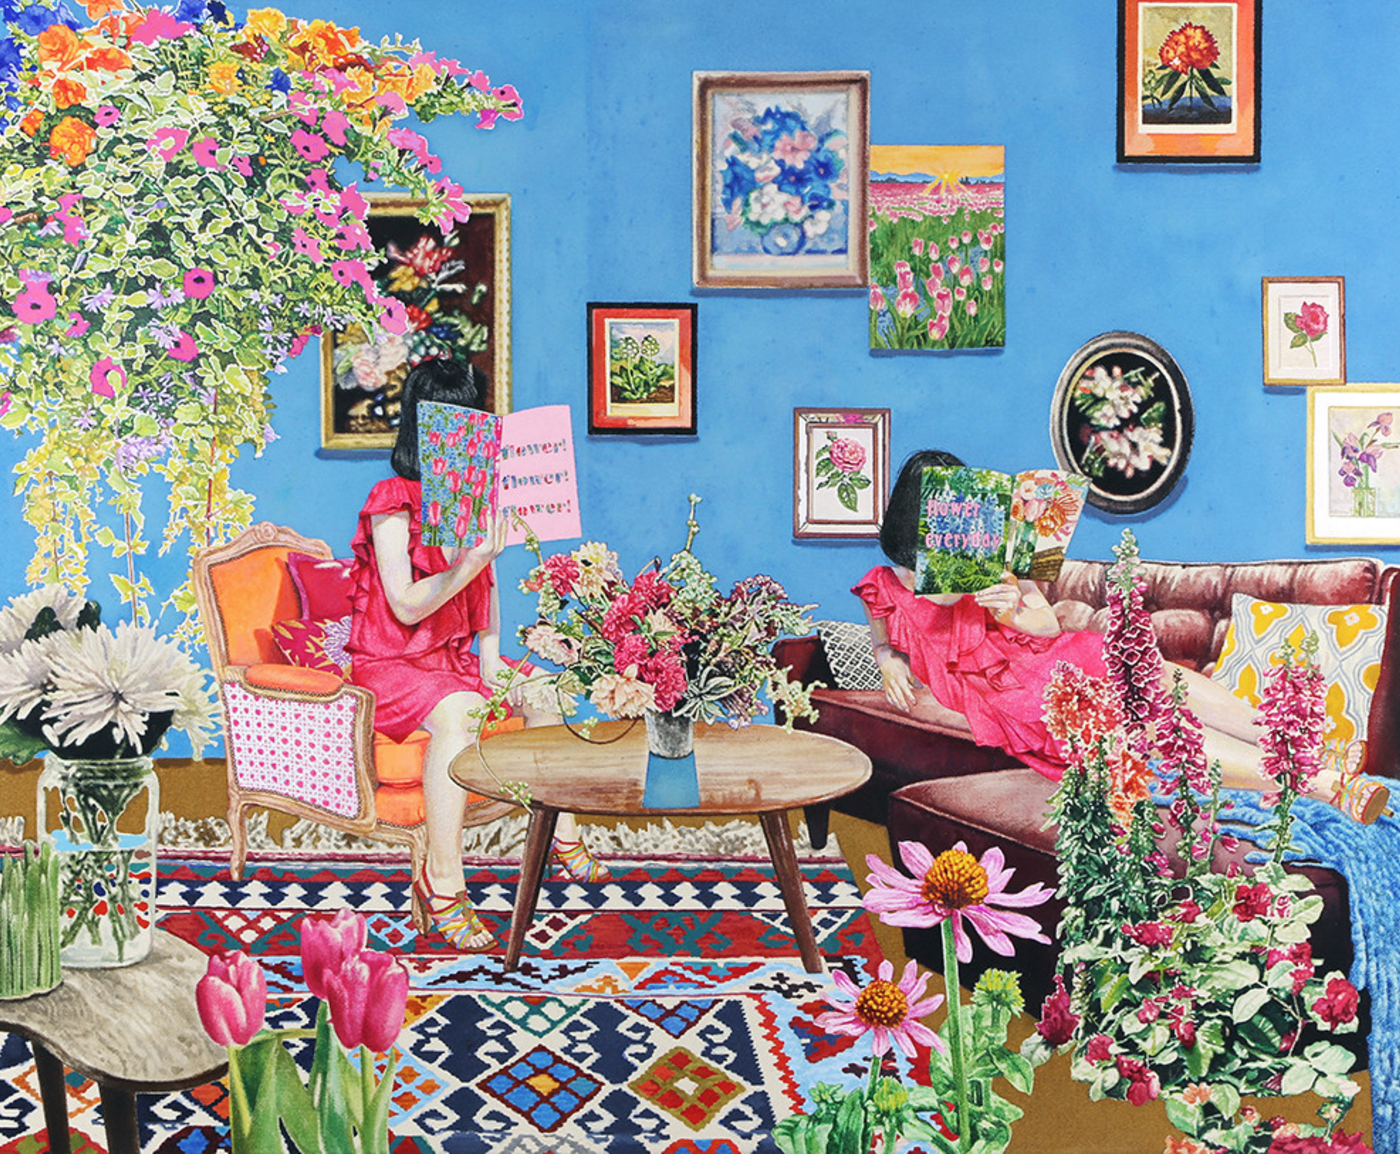 Naomi Okubo Girls Wanna Be Like A Flower Beautiful Things Art Blog